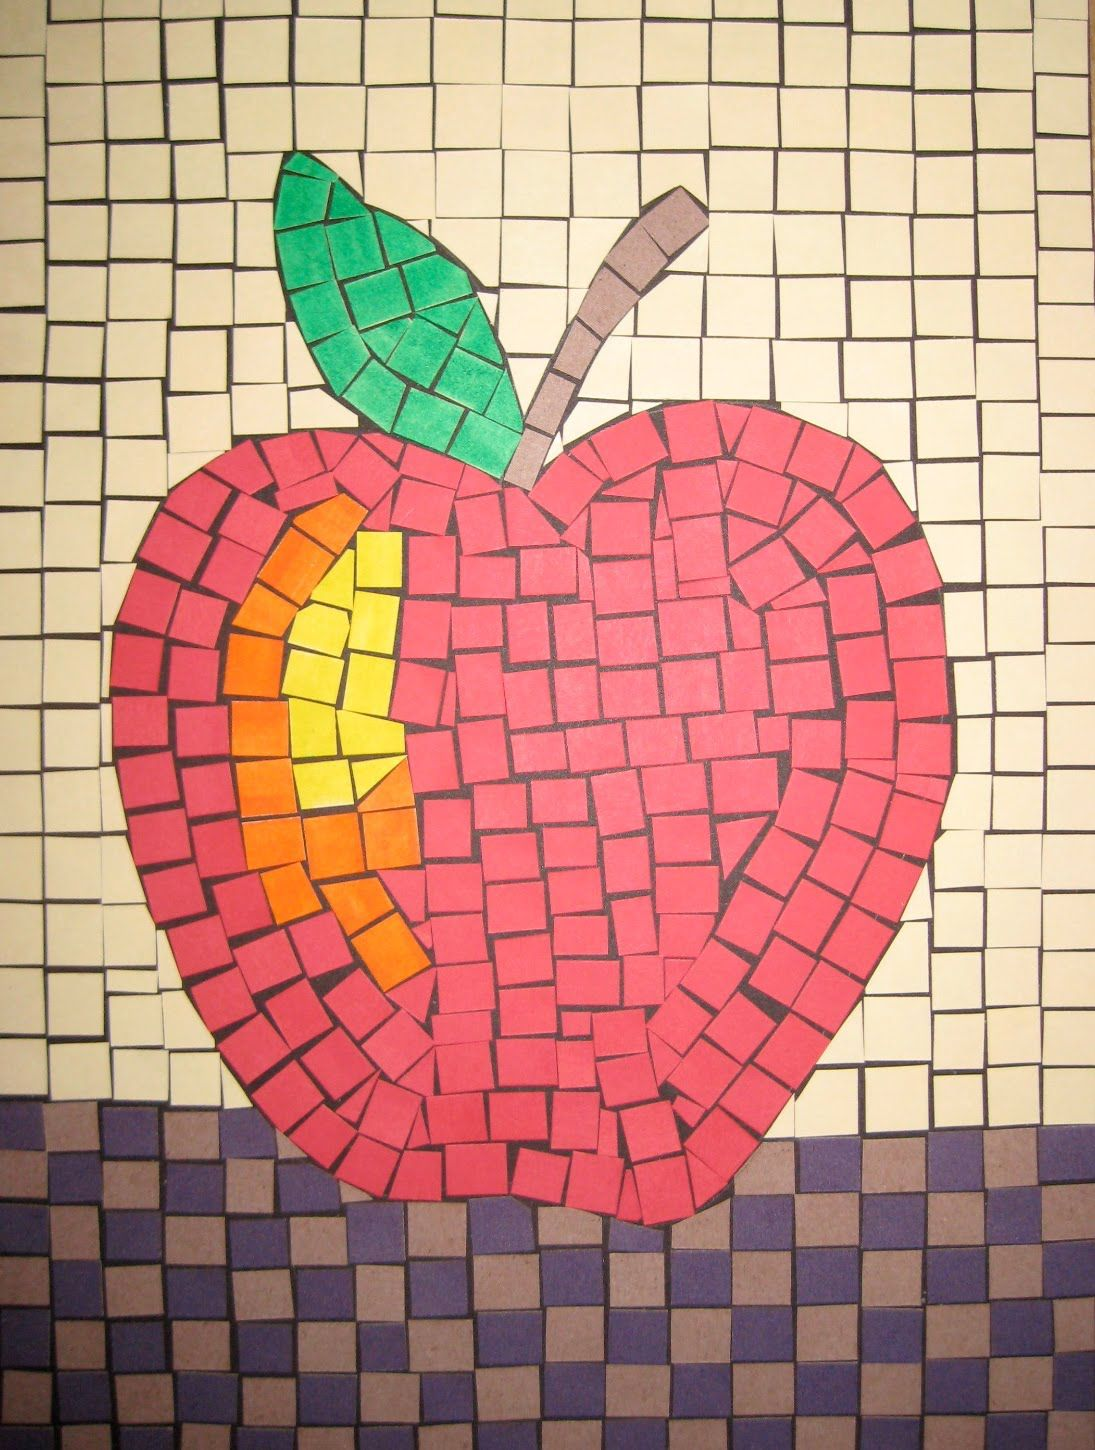 mosaic ideas for kids roman mosaic art project art ideas for rh pinterest com